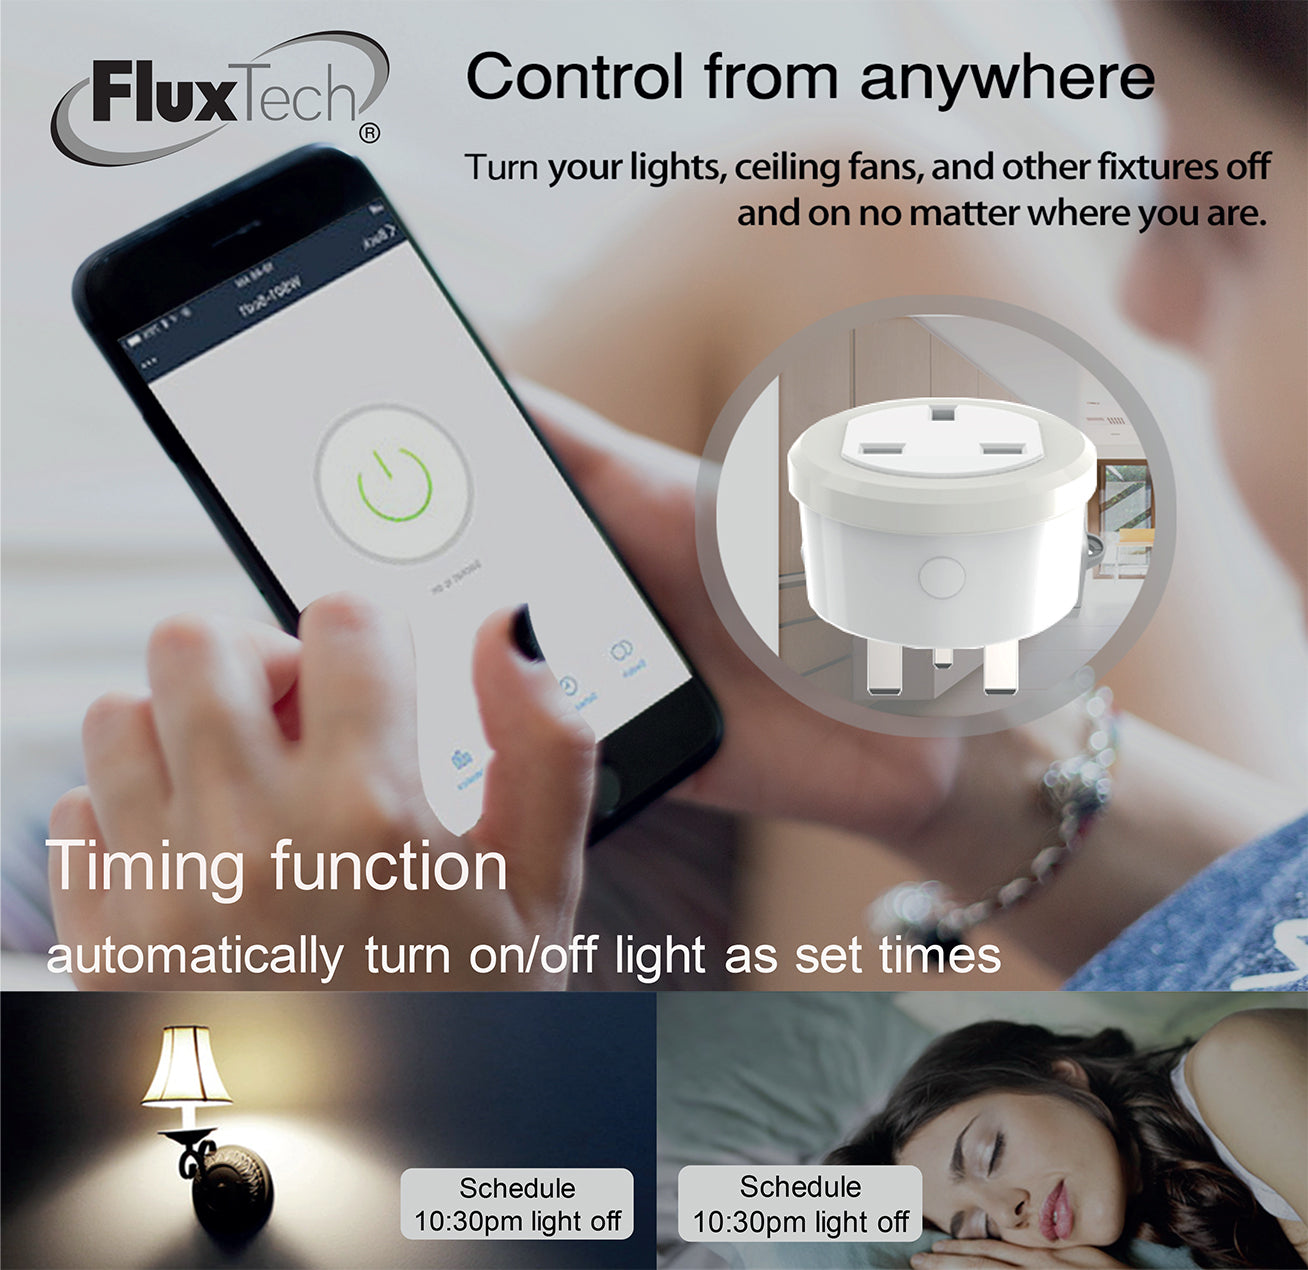 FluxTech - Wireless 2.4GHz Wi-Fi Smart Socket.